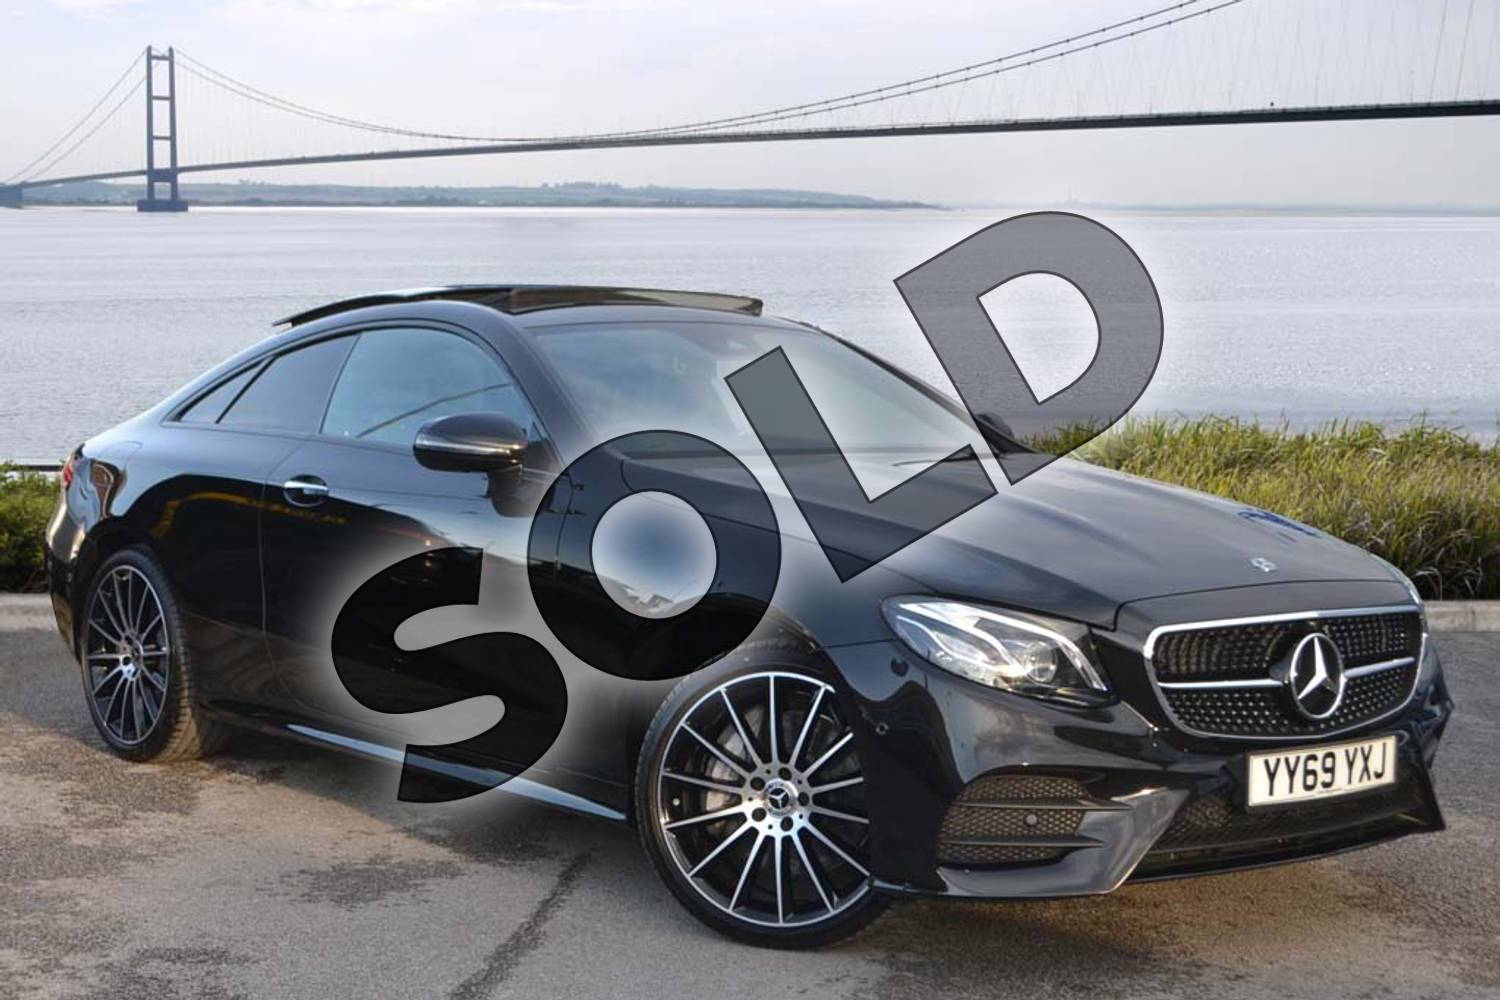 2020 Mercedes-Benz E Class Diesel Coupe E400d 4Matic AMG Line Premium Plus 2dr 9G-Tronic in obsidian black metallic at Mercedes-Benz of Hull